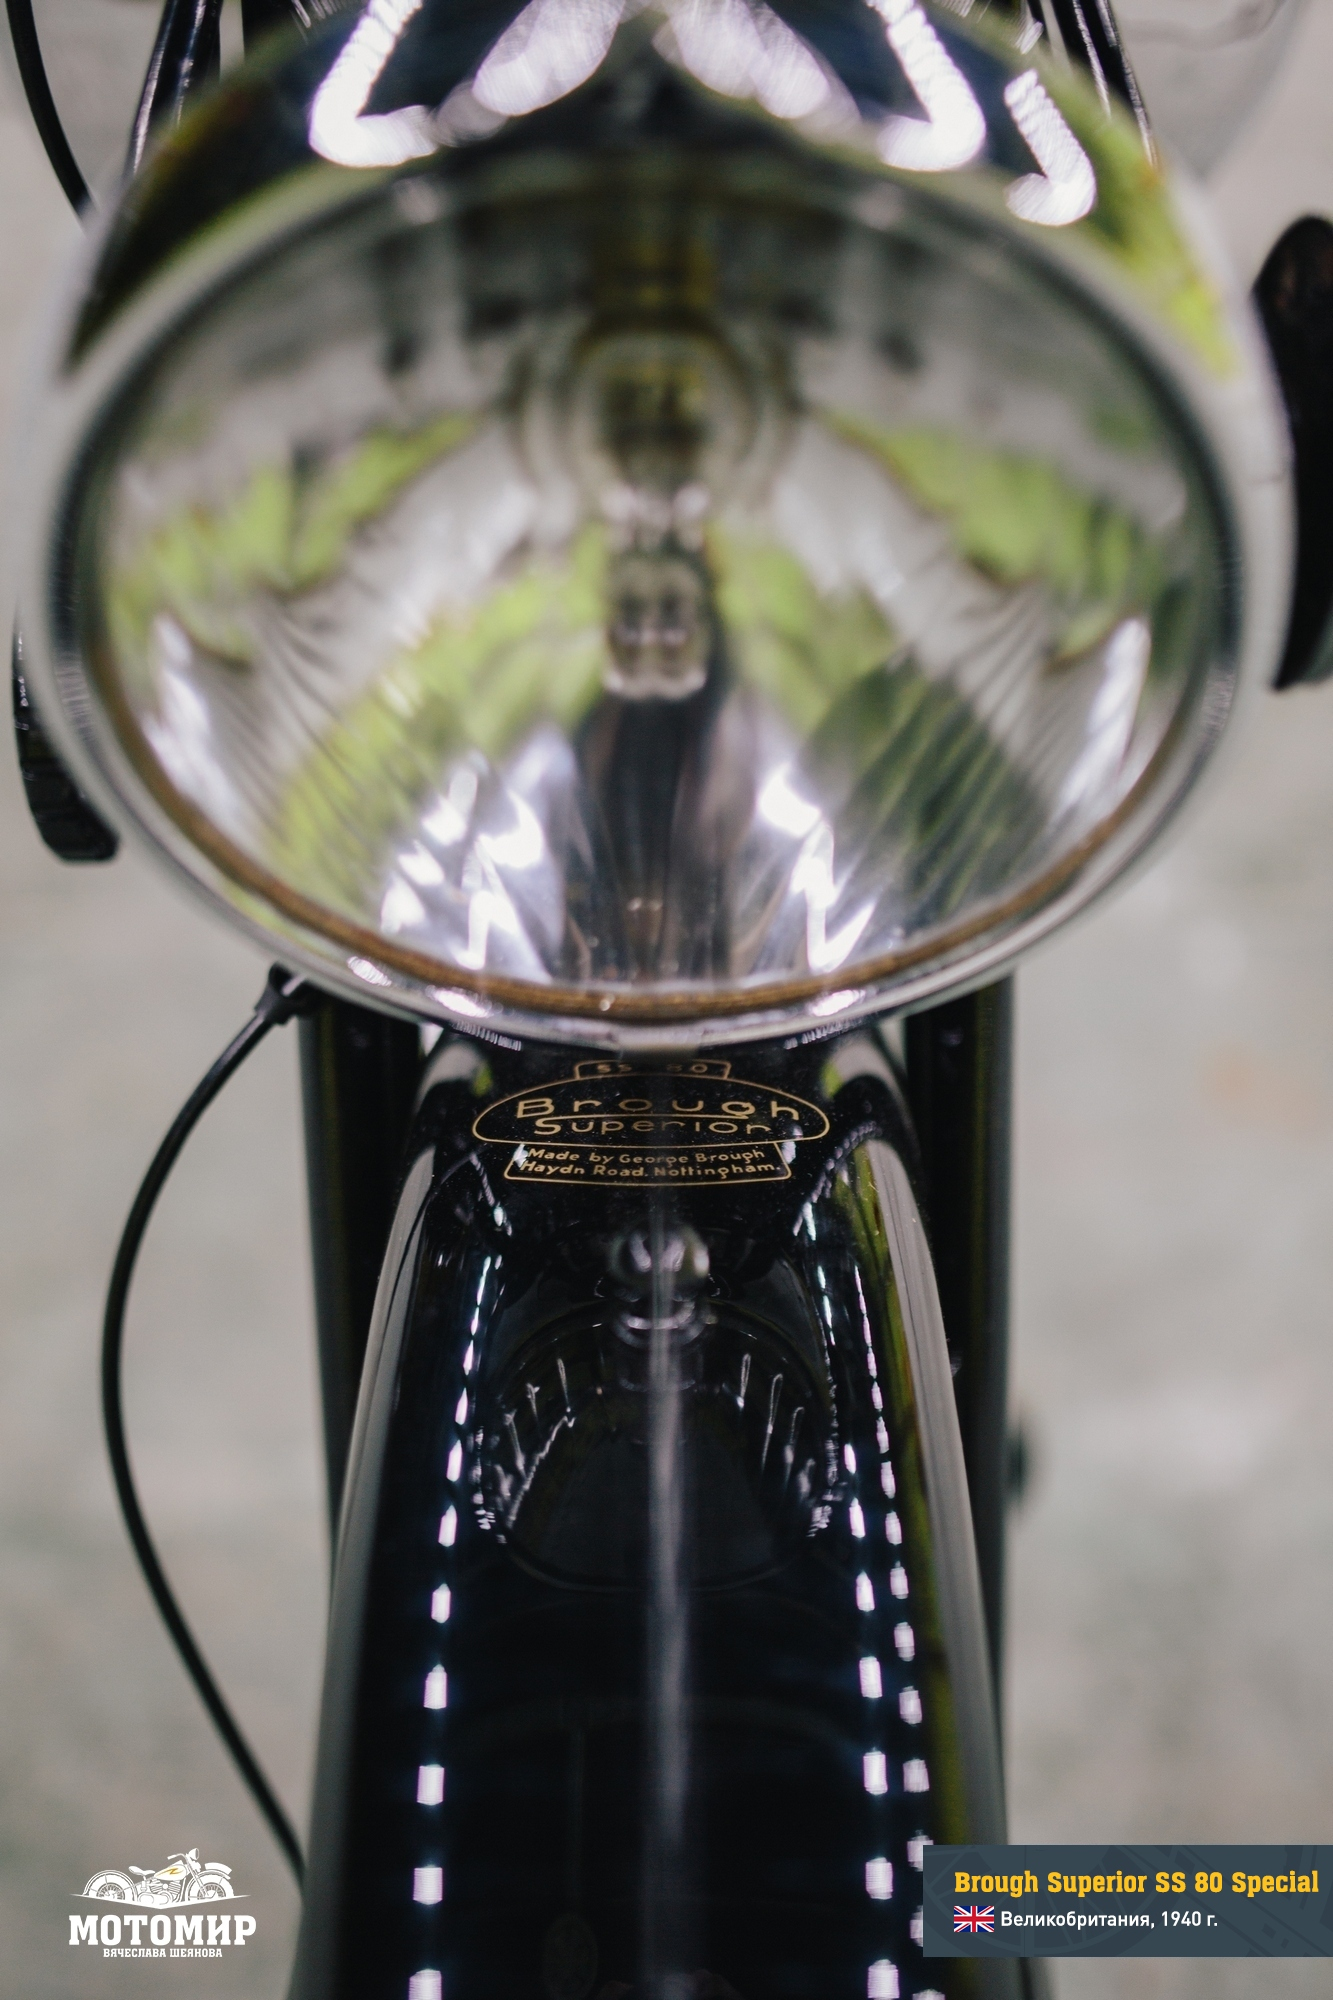 brough-superior-ss-80-201502-web-20